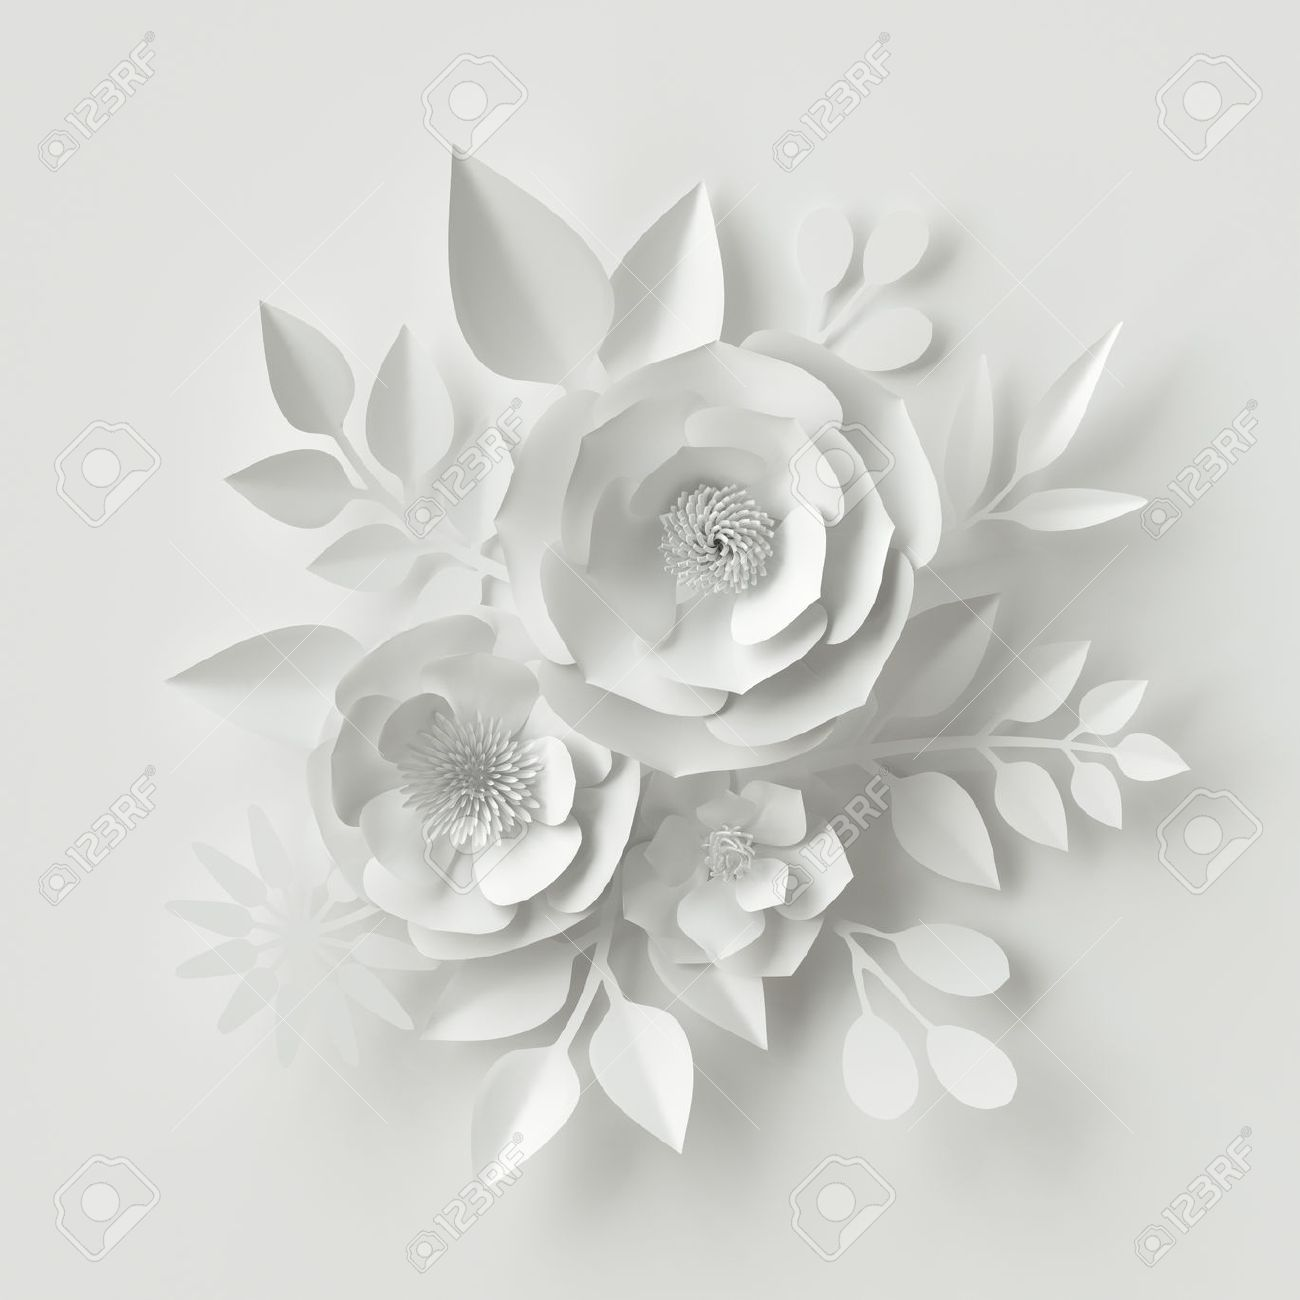 3d Render Digital Illustration White Paper Flowers Floral Stock